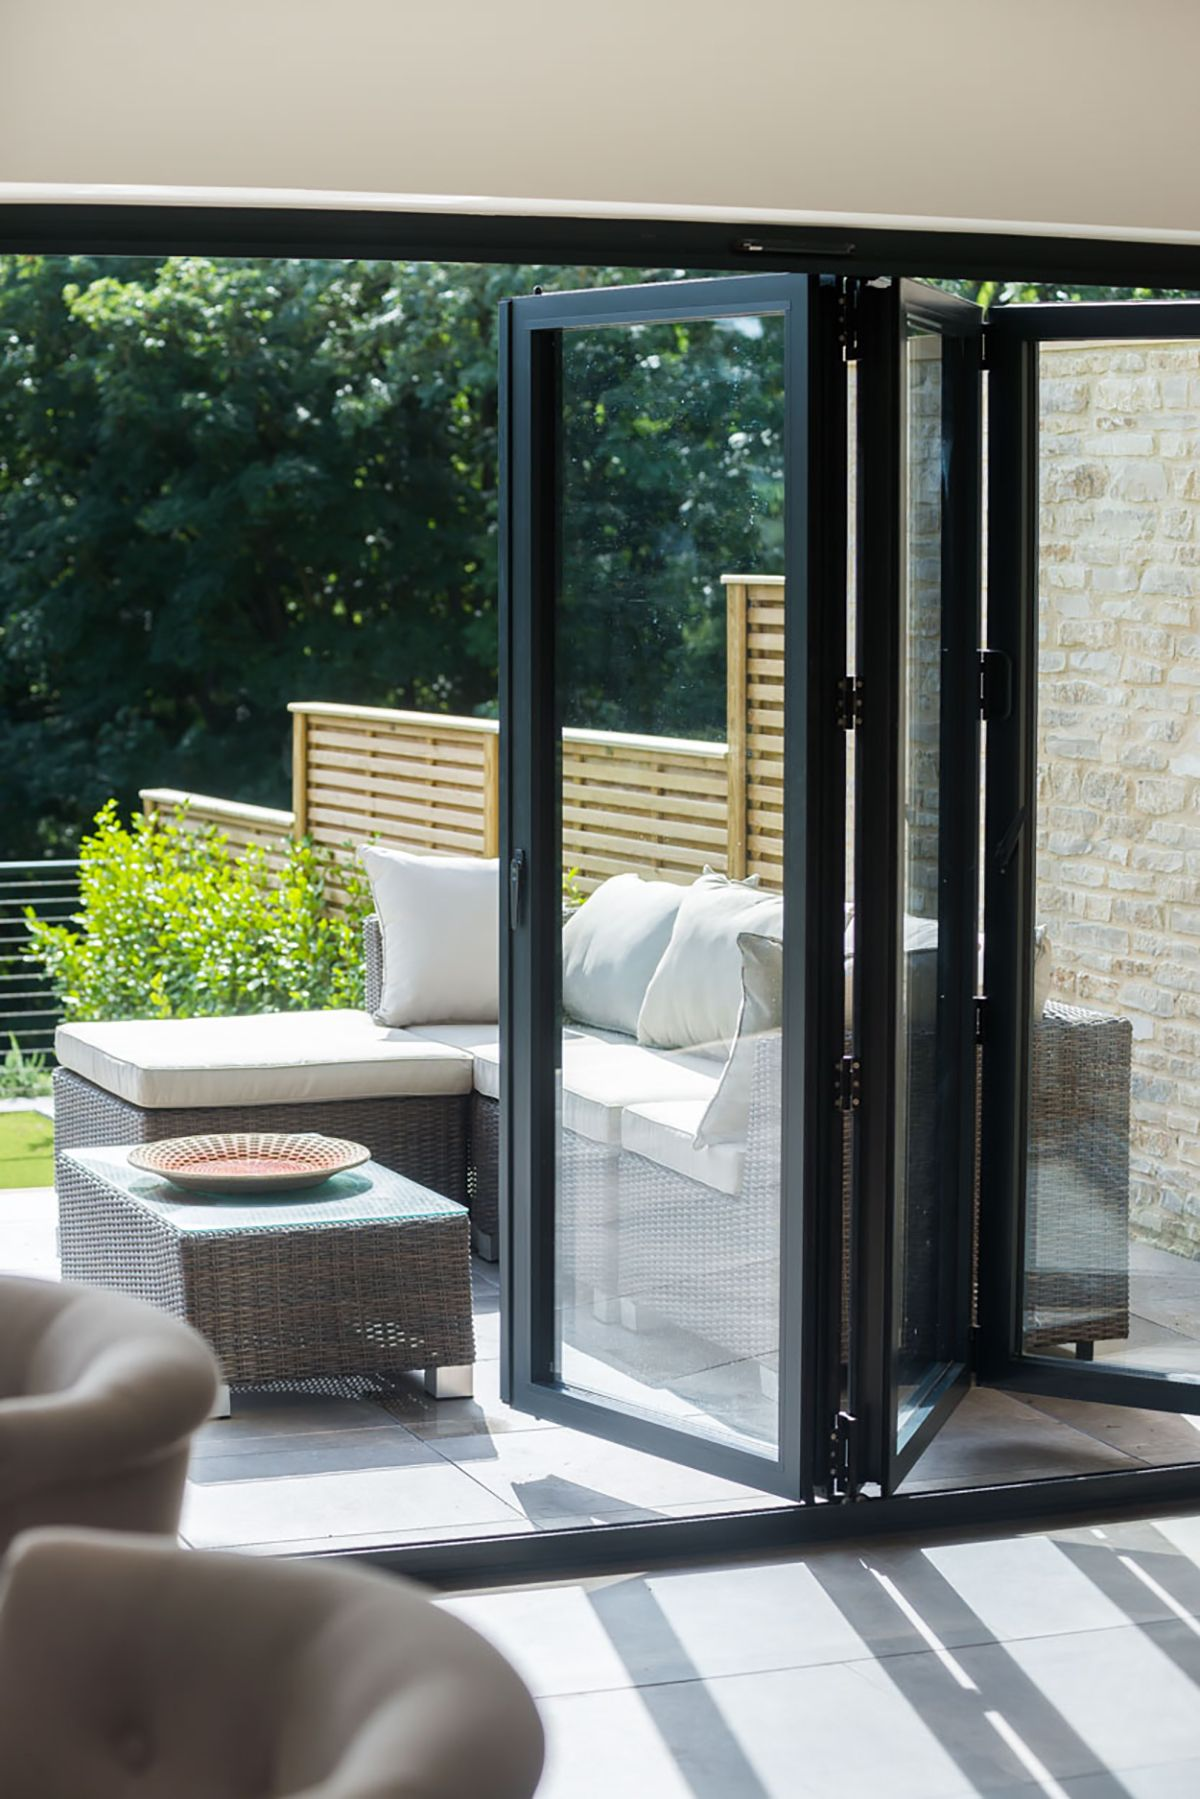 Aluminium Bifolding Doors From Gfd Homes To Suit Any Home From The Simplest To Most Complex We Can Help Bifold Doors Sliding Glass Door Sliding Door Panels